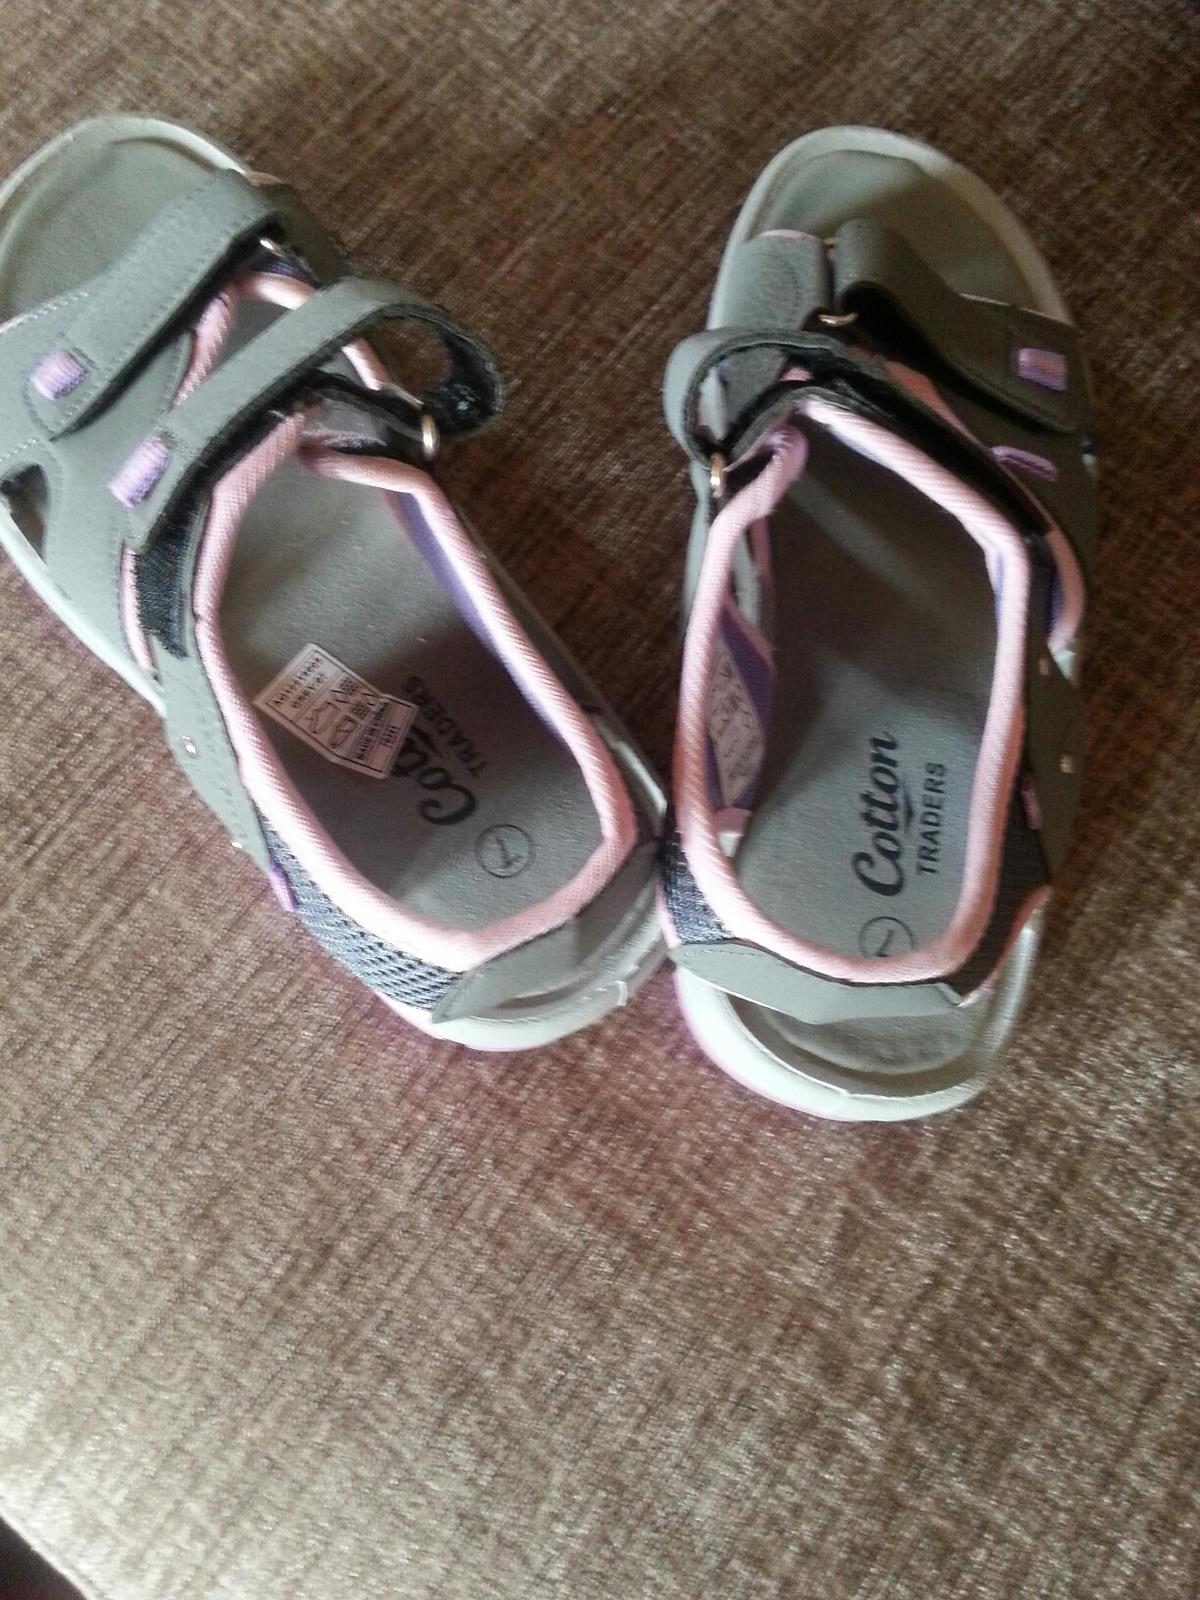 ec14c6e149d COTTON TRADERS SANDALS £1.50 in DY9 Dudley for £1.50 for sale - Shpock